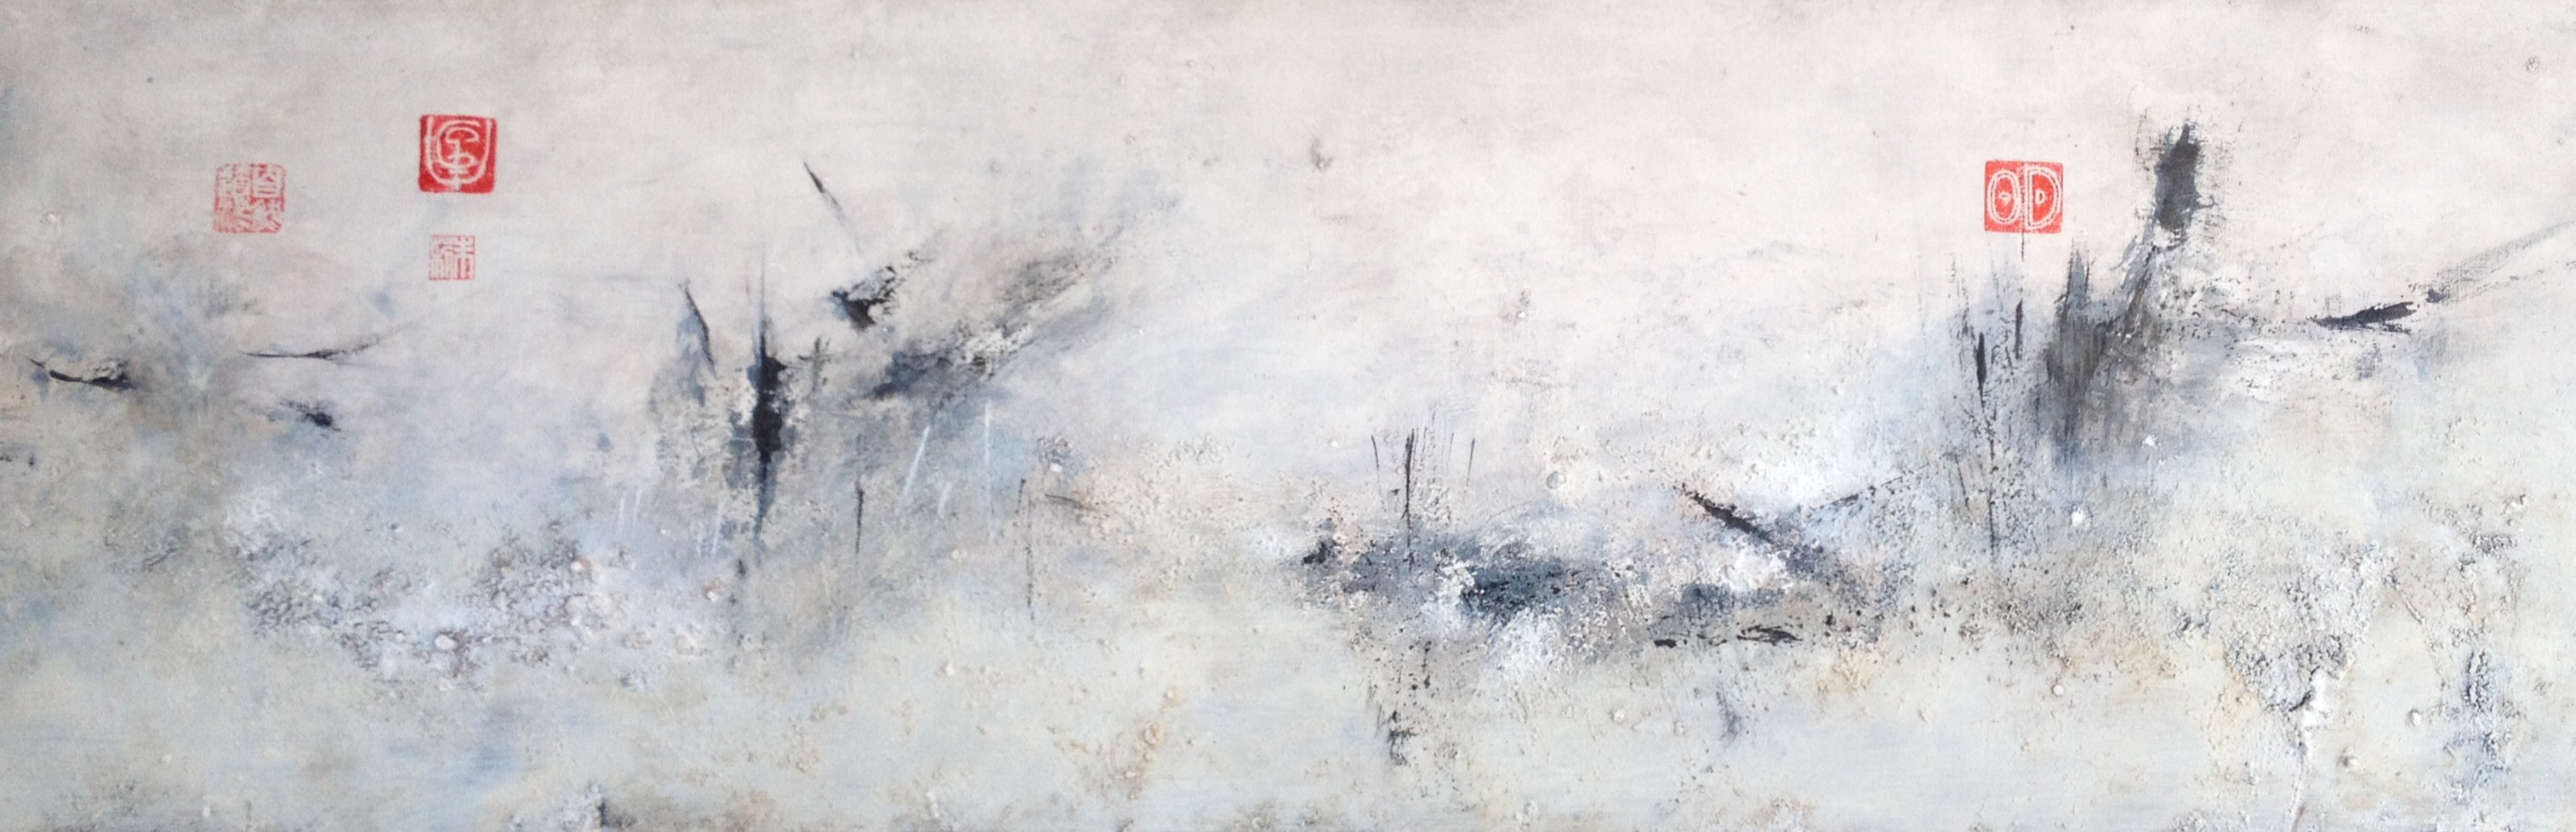 Julie Hauer, Untitled, 2015, Mixed media on canvas, 45 x 120 cm